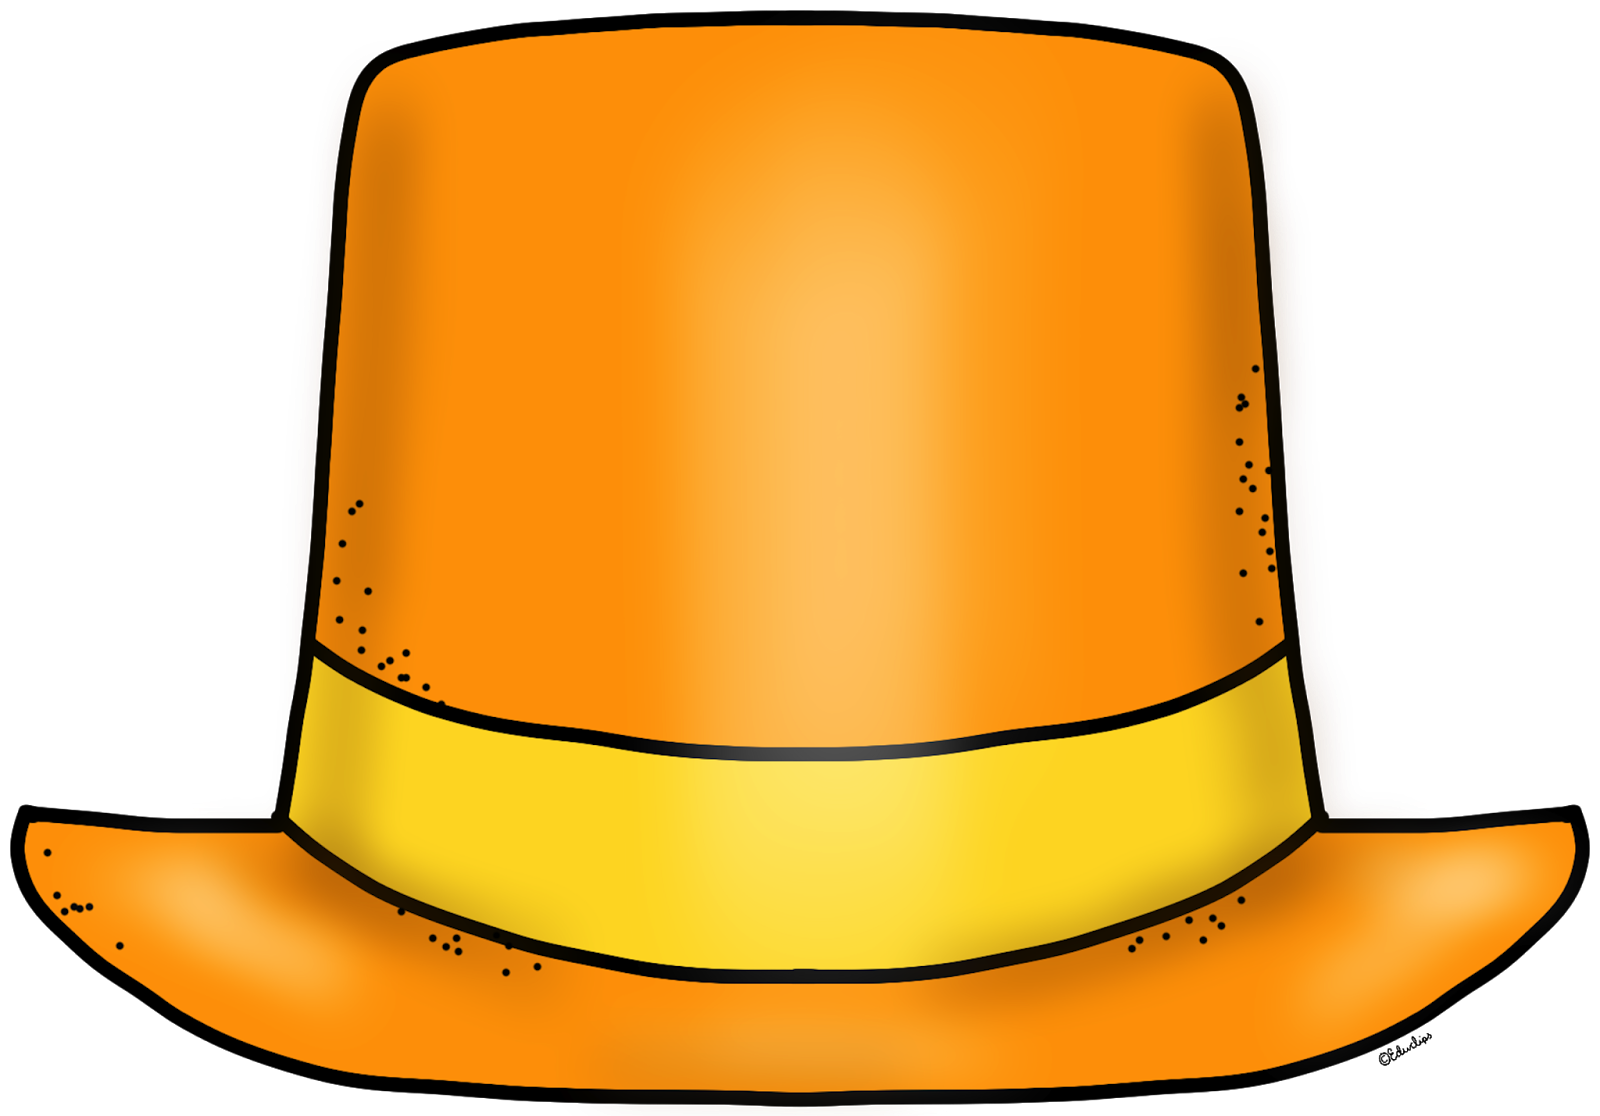 new year hat clipart - photo #45